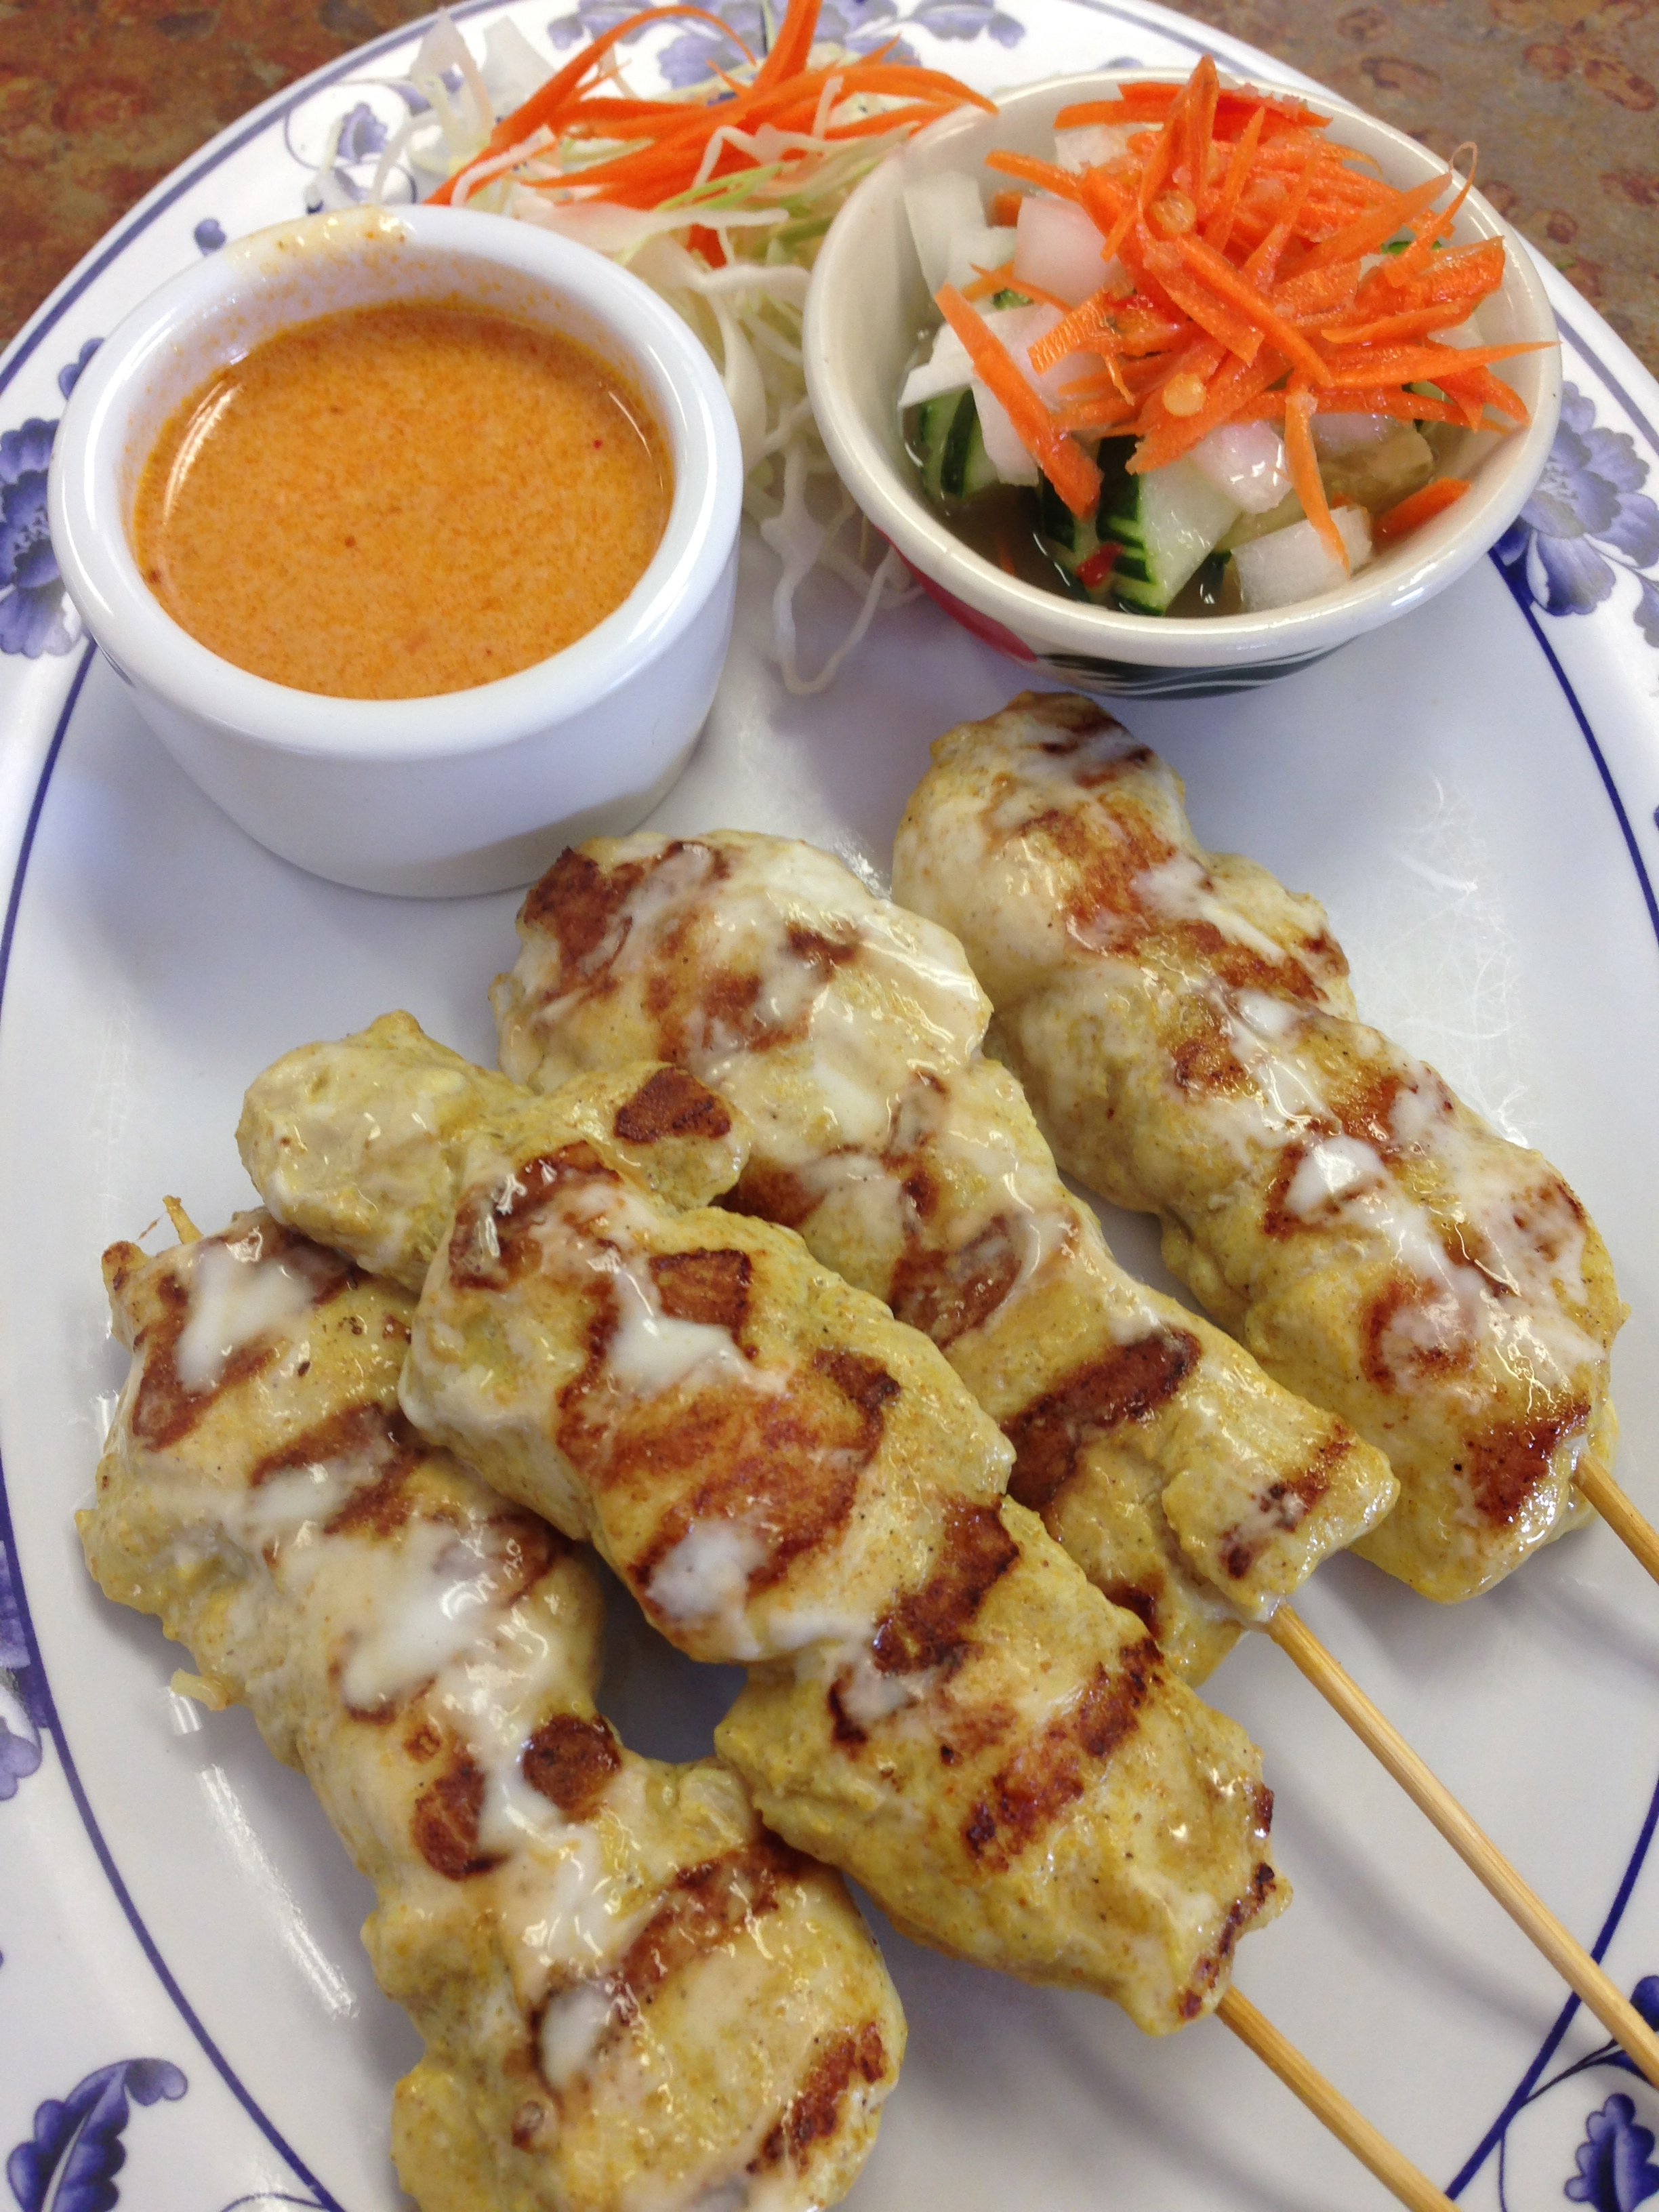 #3 CHICKEN SATAY